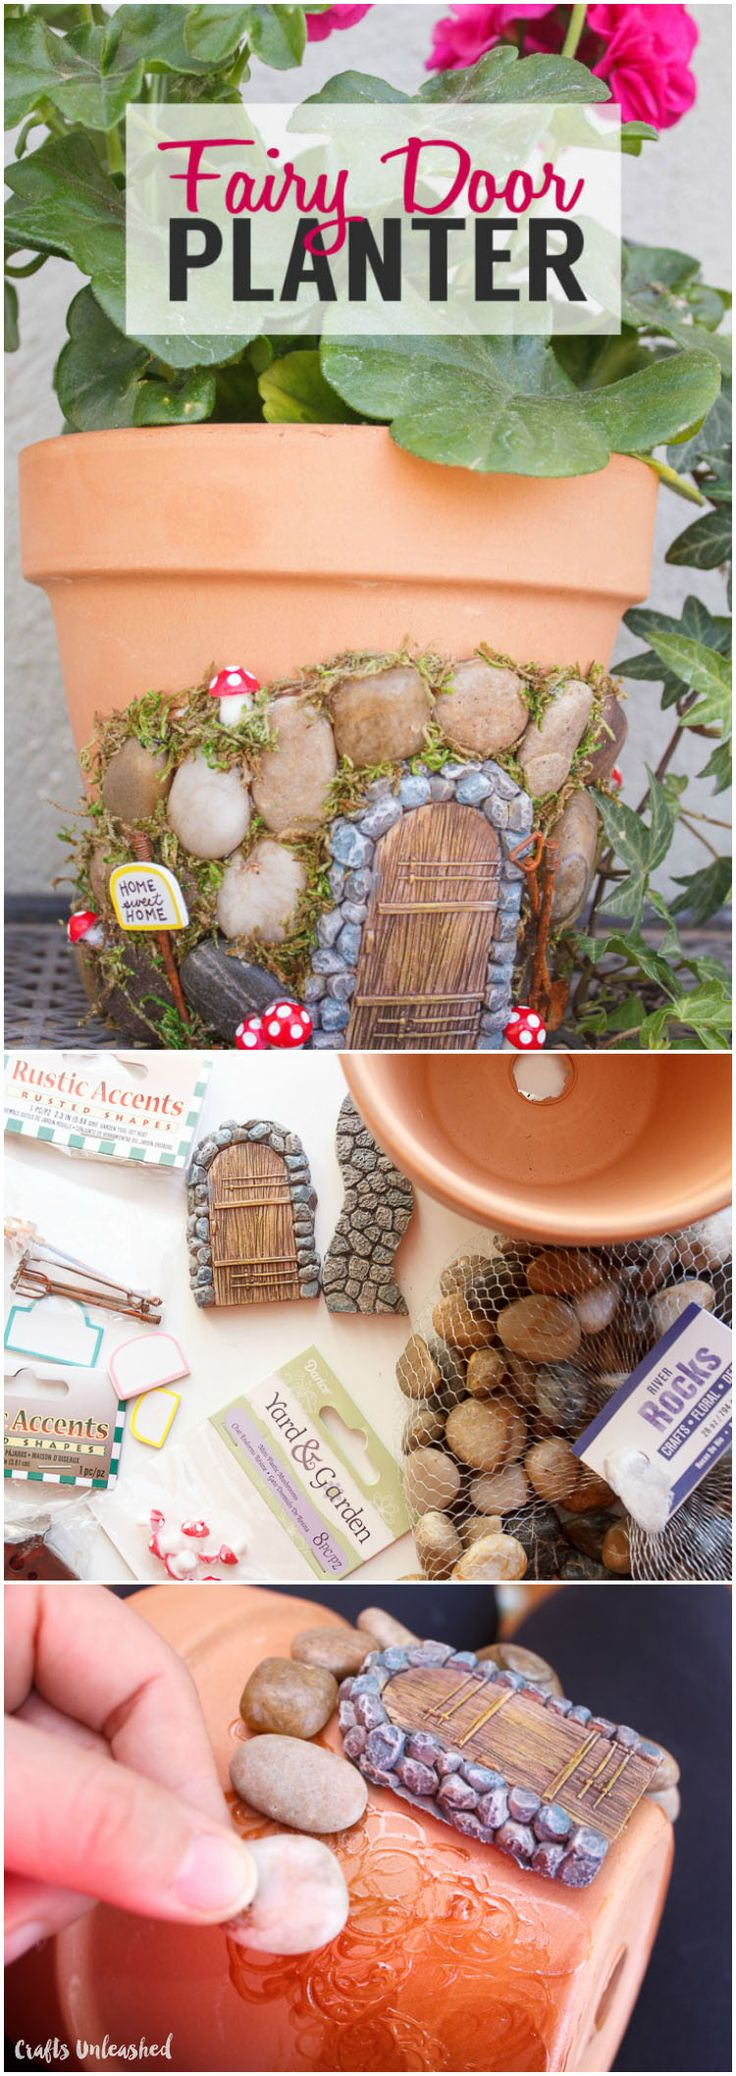 Pinterest Garden Craft Ideas Part - 37: DIY Fairy House Planter Project - Crafts Unleashed